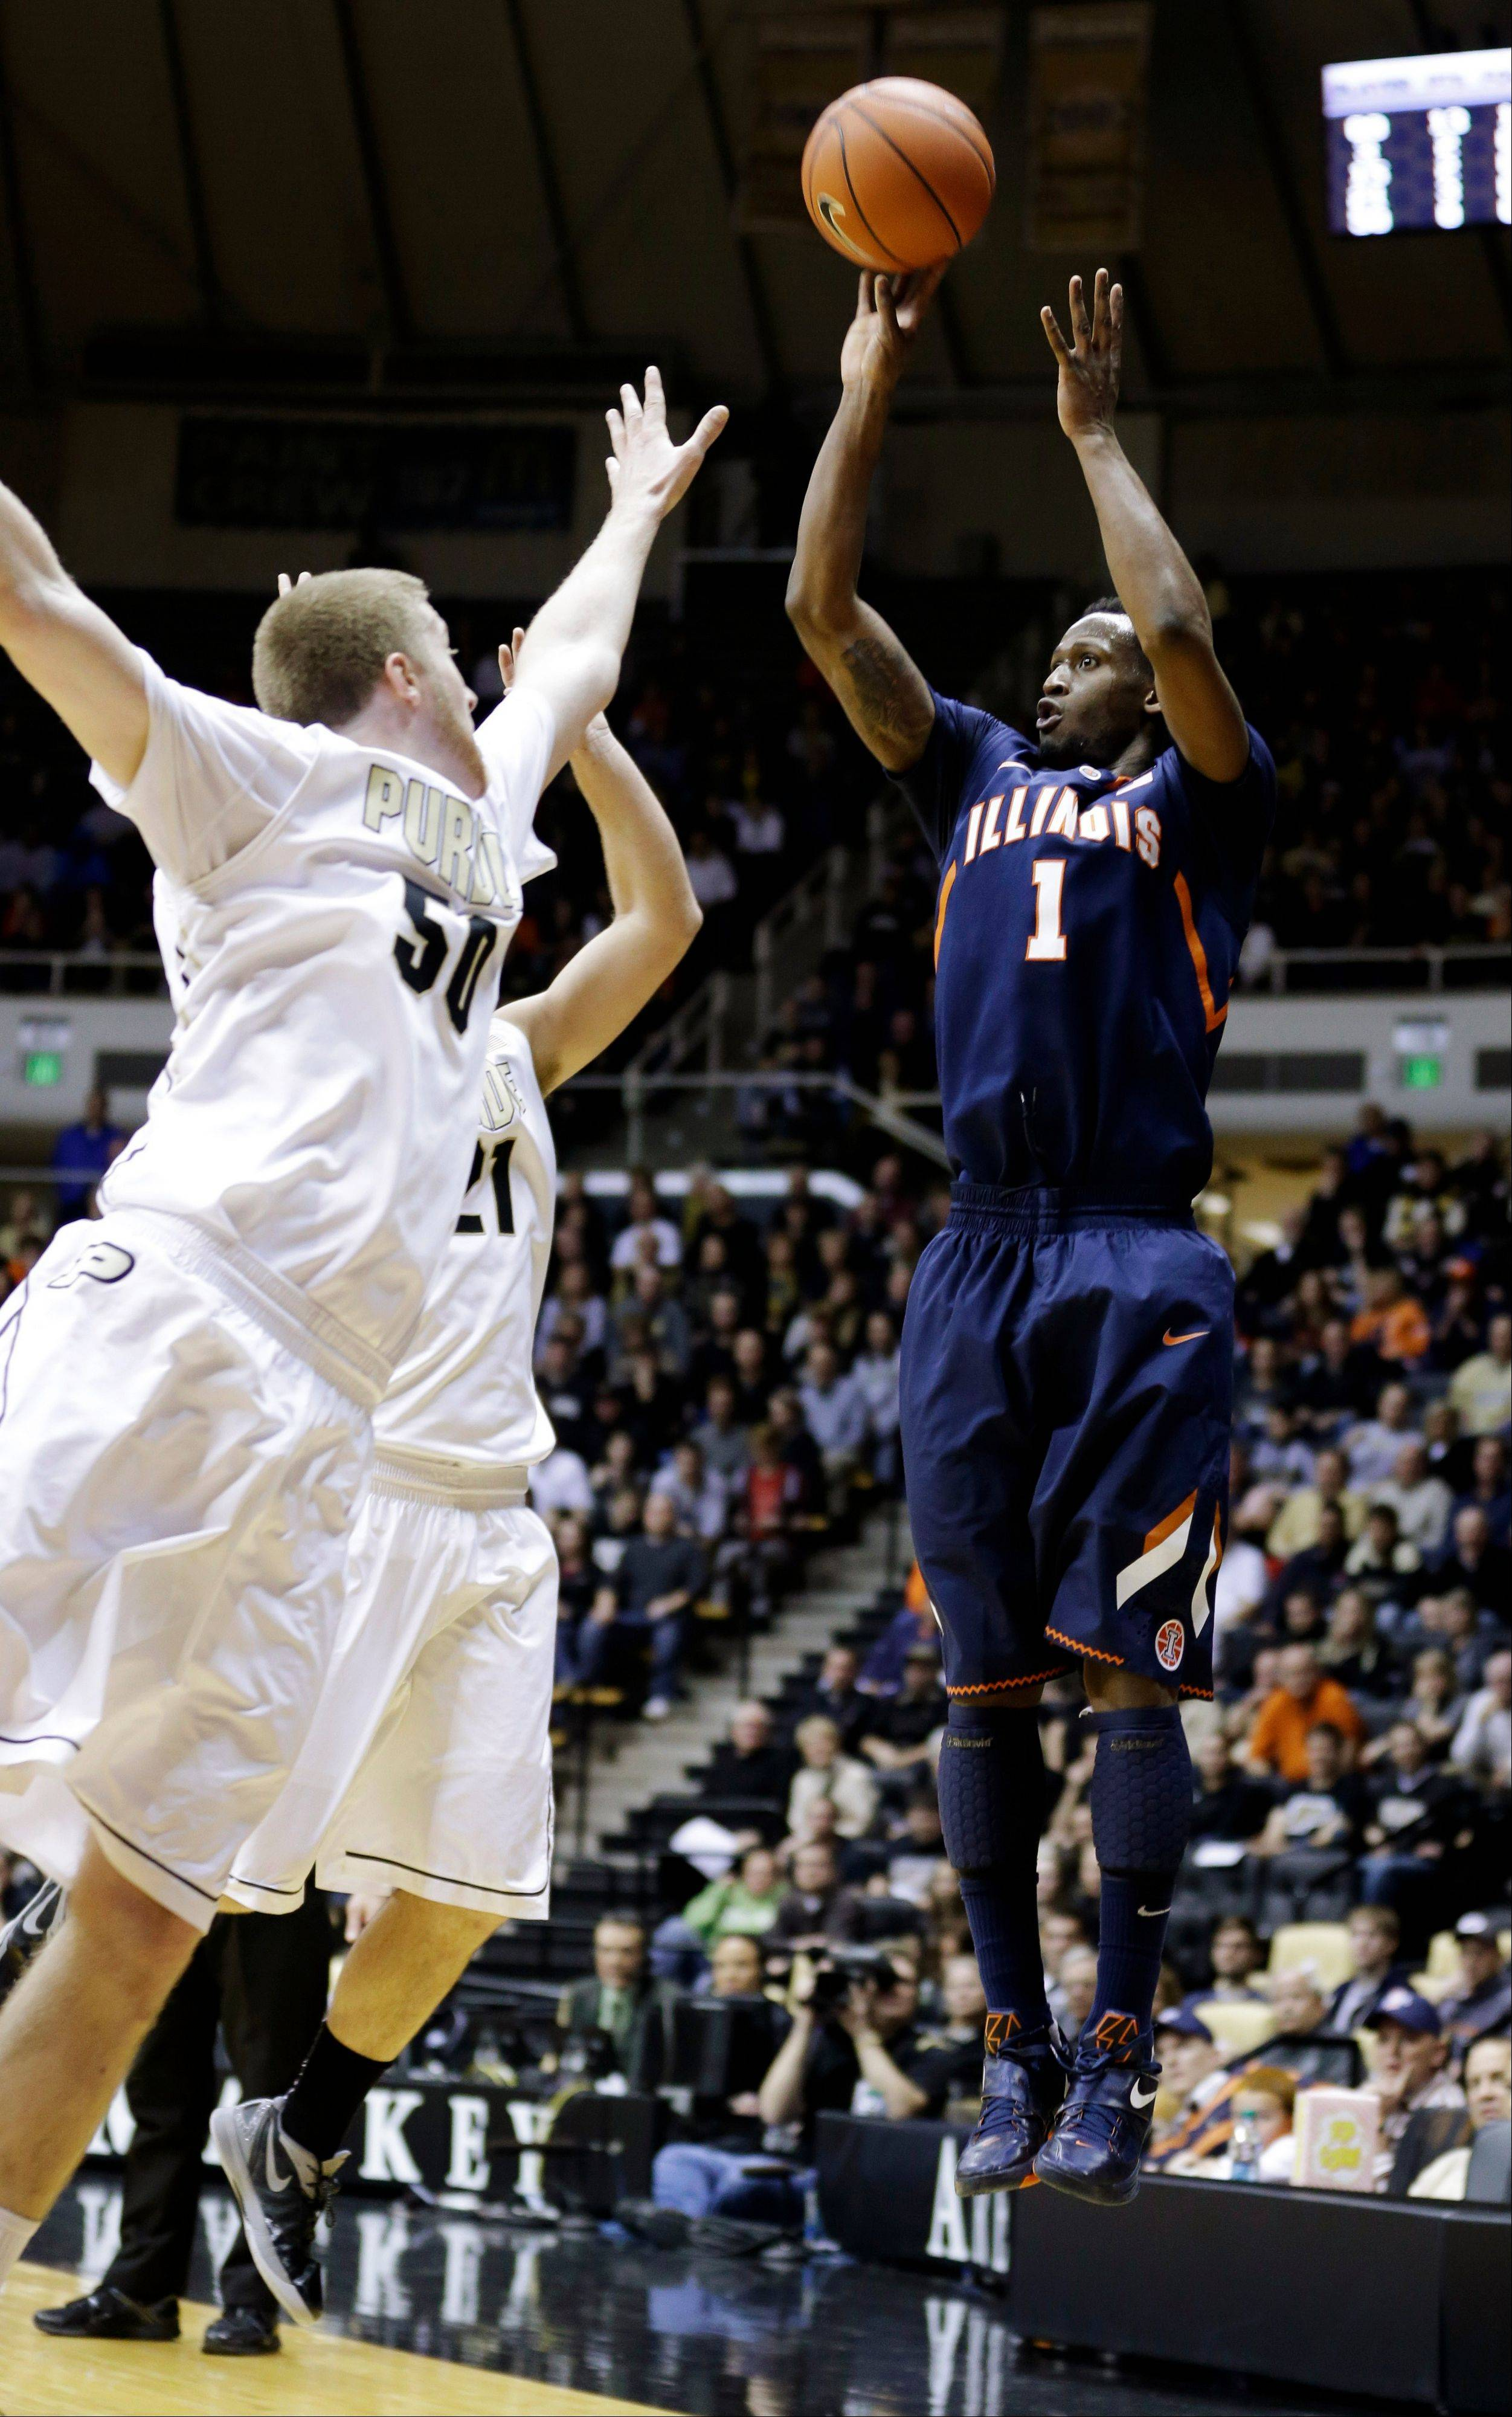 Illinois guard D.J. Richardson (1) shoots over Purdue forwards Travis Carroll (50) and D.J. Byrd Wednesday in West Lafayette, Ind. Purdue beat the No. 11 Illini 68-61